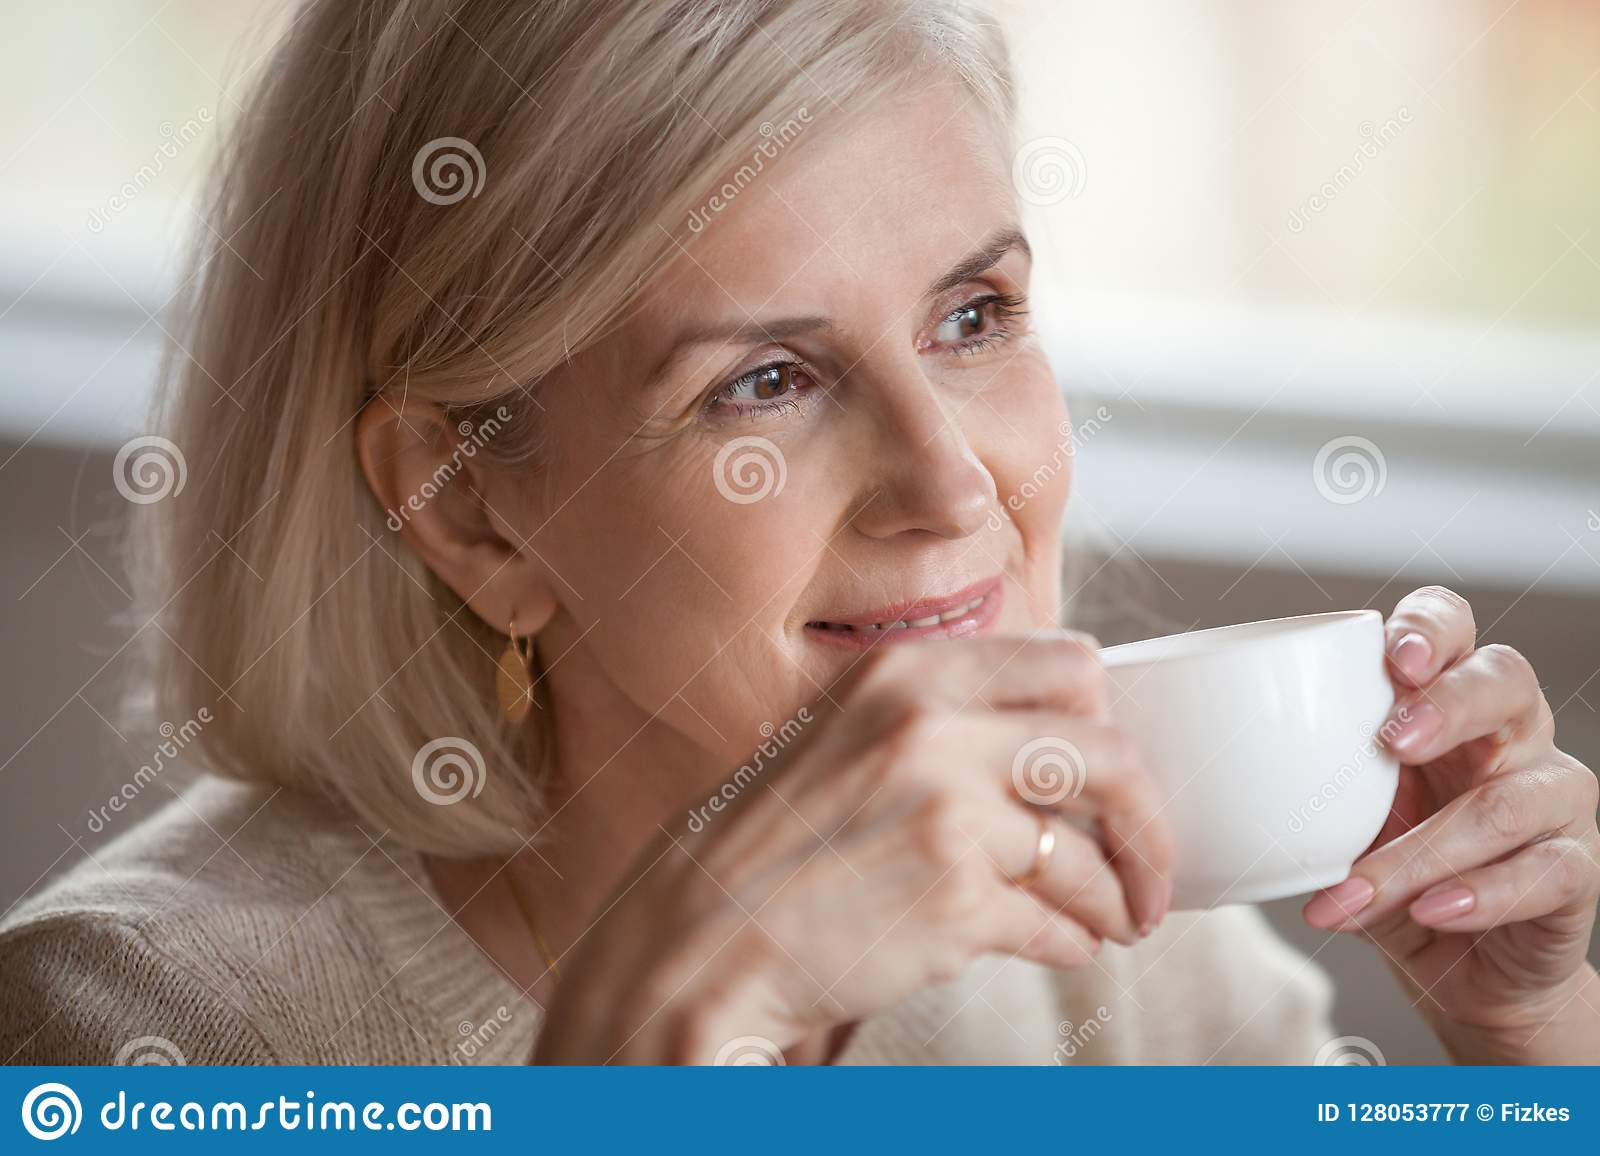 Thoughtful smiling middle aged woman looking away dreaming drink